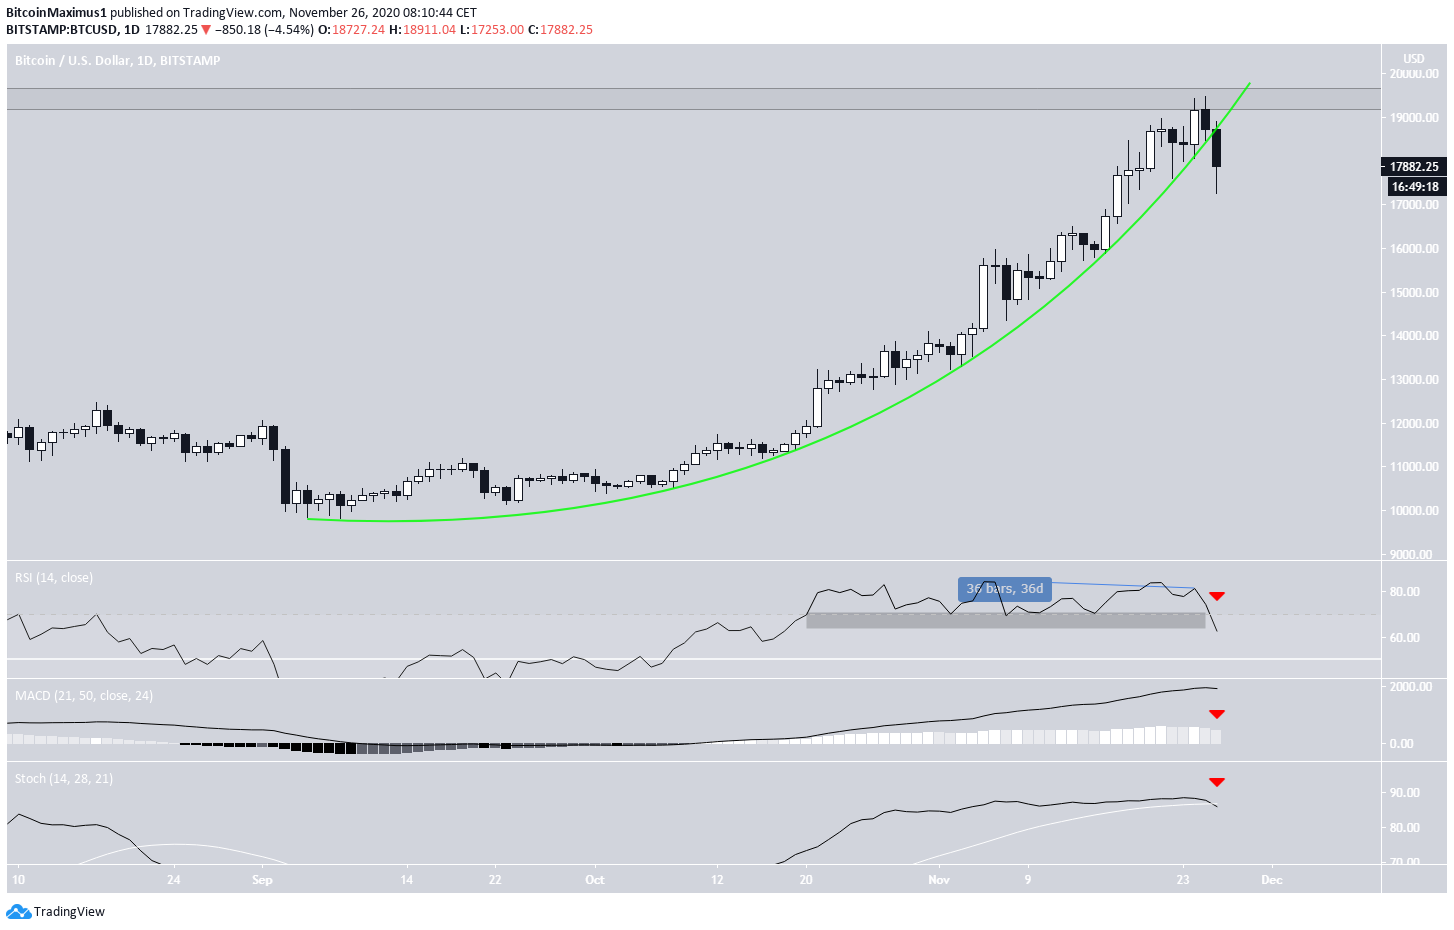 BTC Breakdown